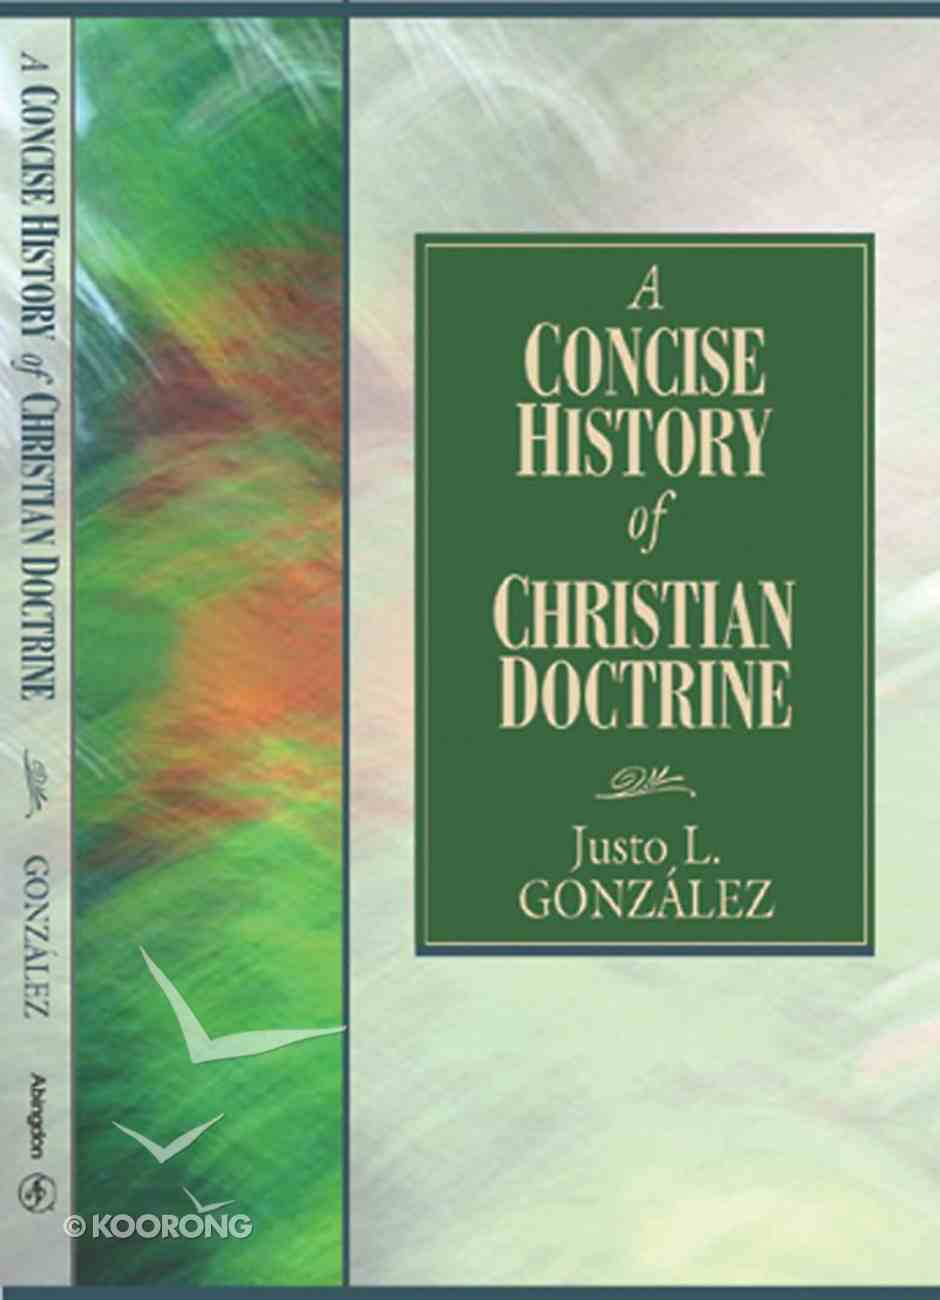 A Concise History of Christian Doctrine eBook